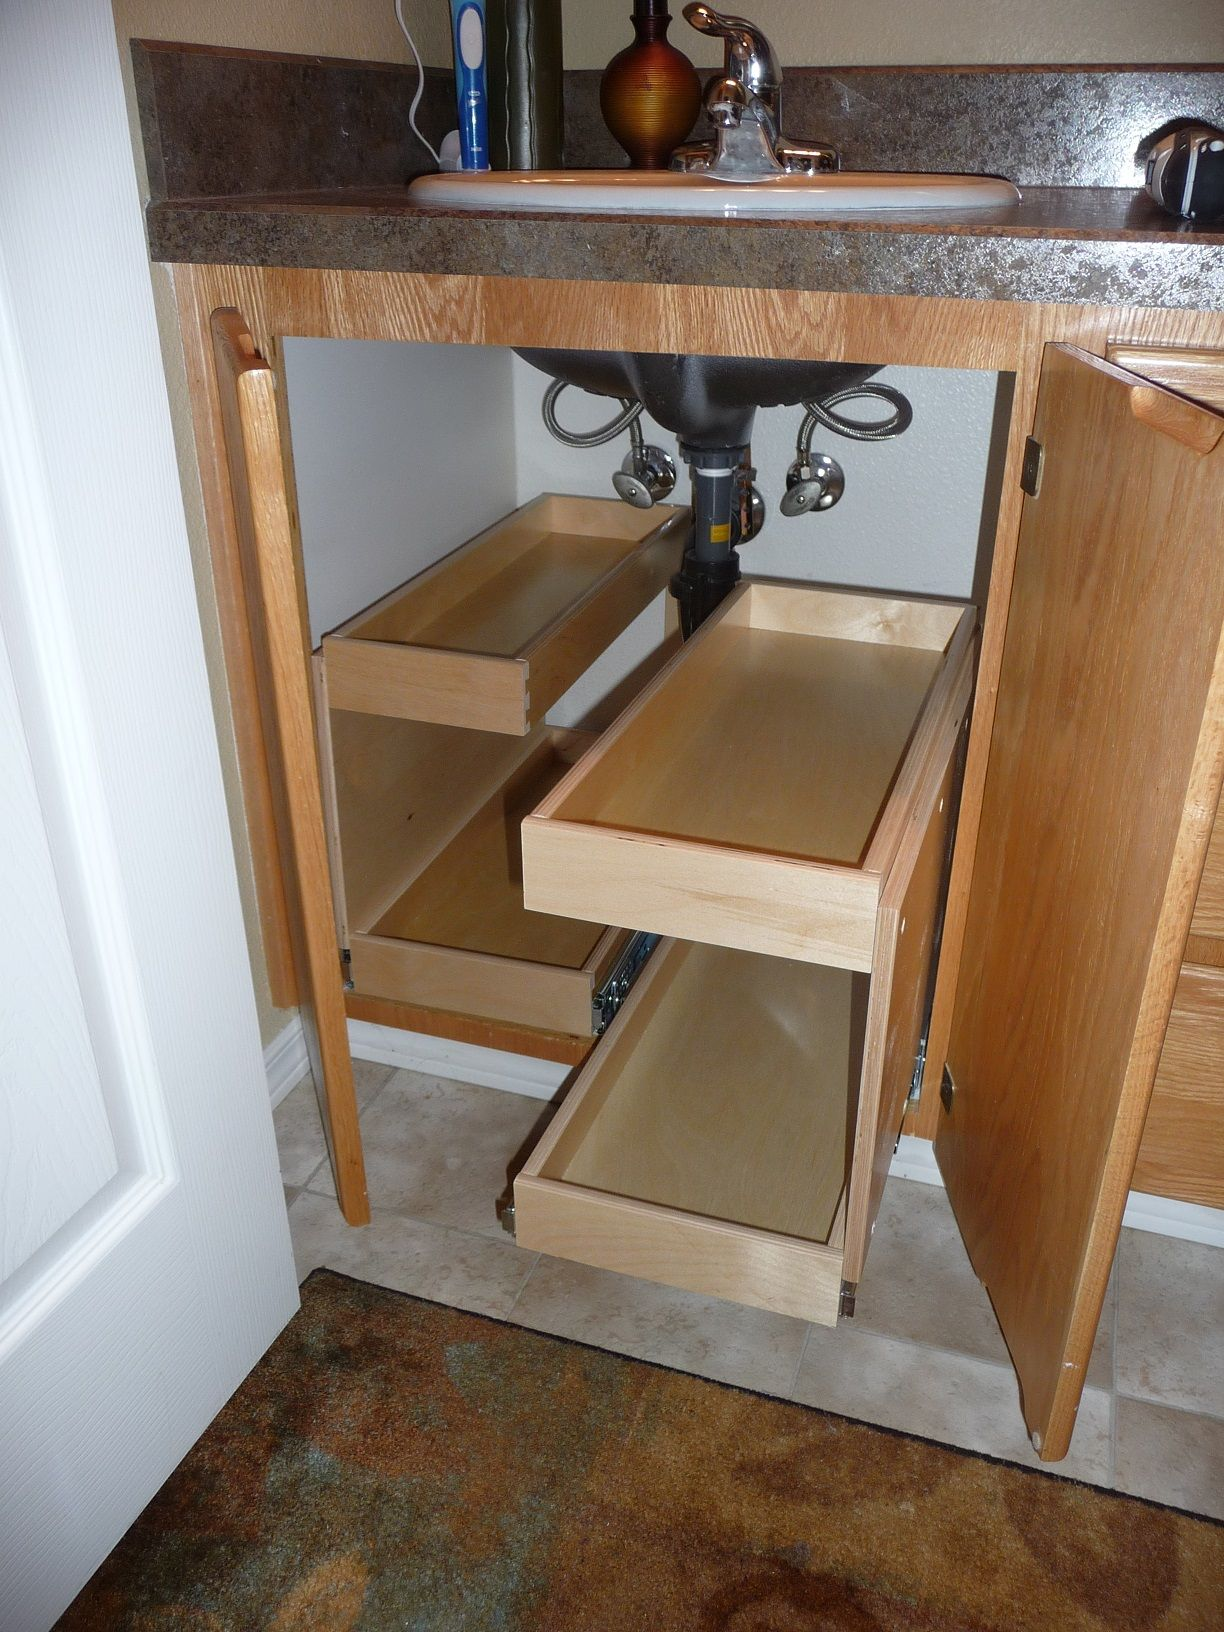 Pull Out Shelves Under Bathroom Sinks Tintle Focus Board